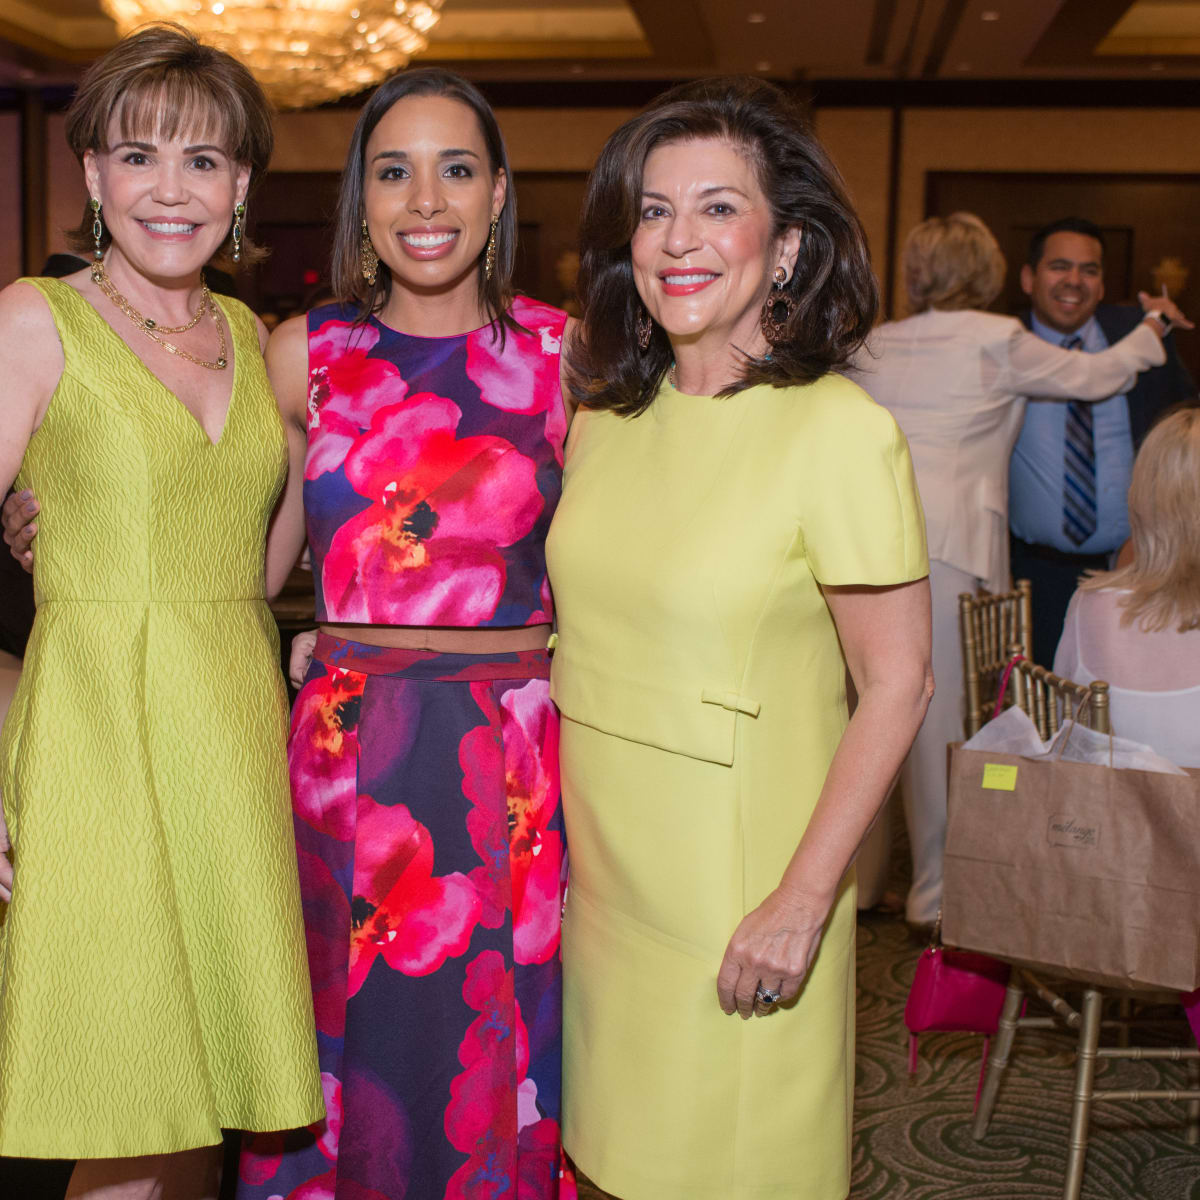 Latin Women's Initiative luncheon 5/16, Hallie Vanderhider, Lacey Dalcour Salas, Dancie Ware